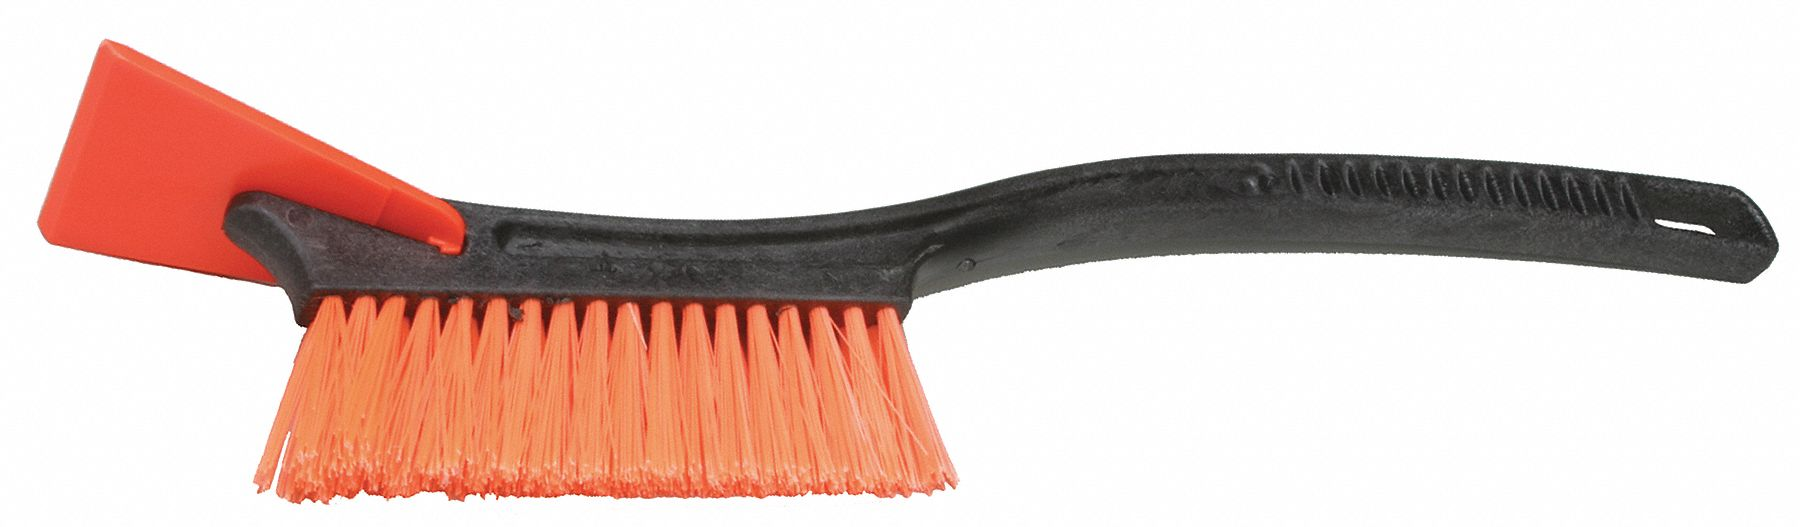 Fixed Head Snow Brush and Scraper with 19.25 in Plastic Contour Grip Handle, Black